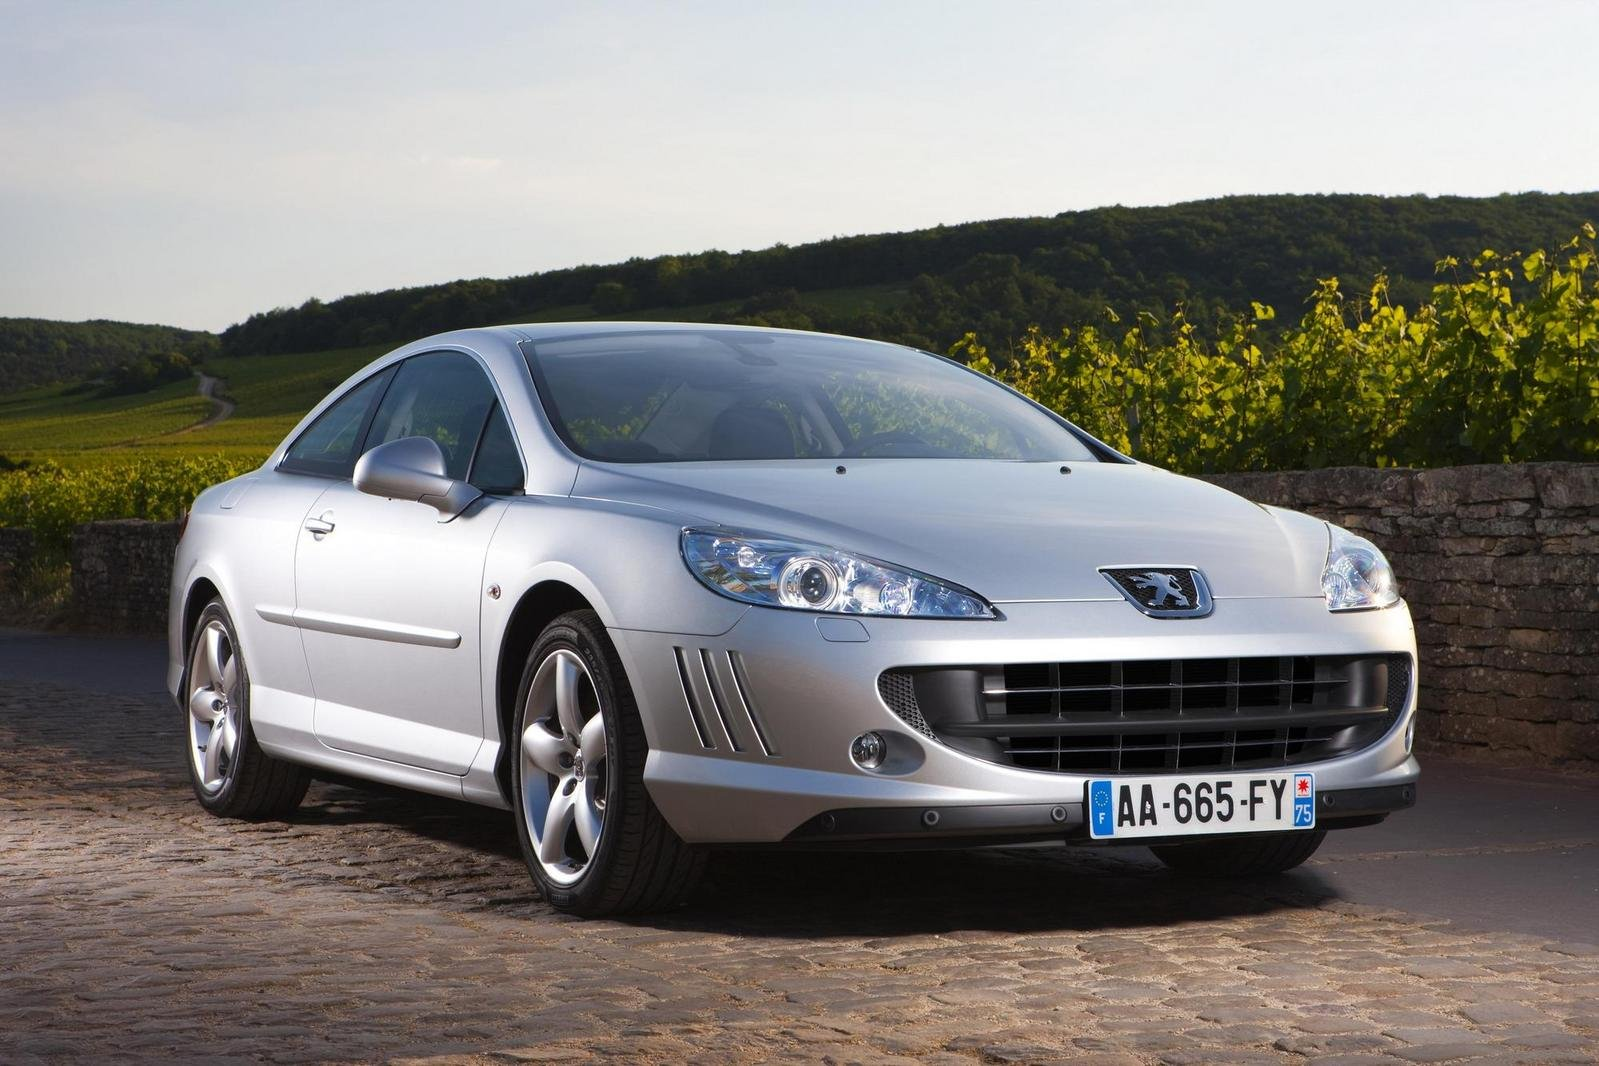 2009 peugeot 407 coupe review - top speed